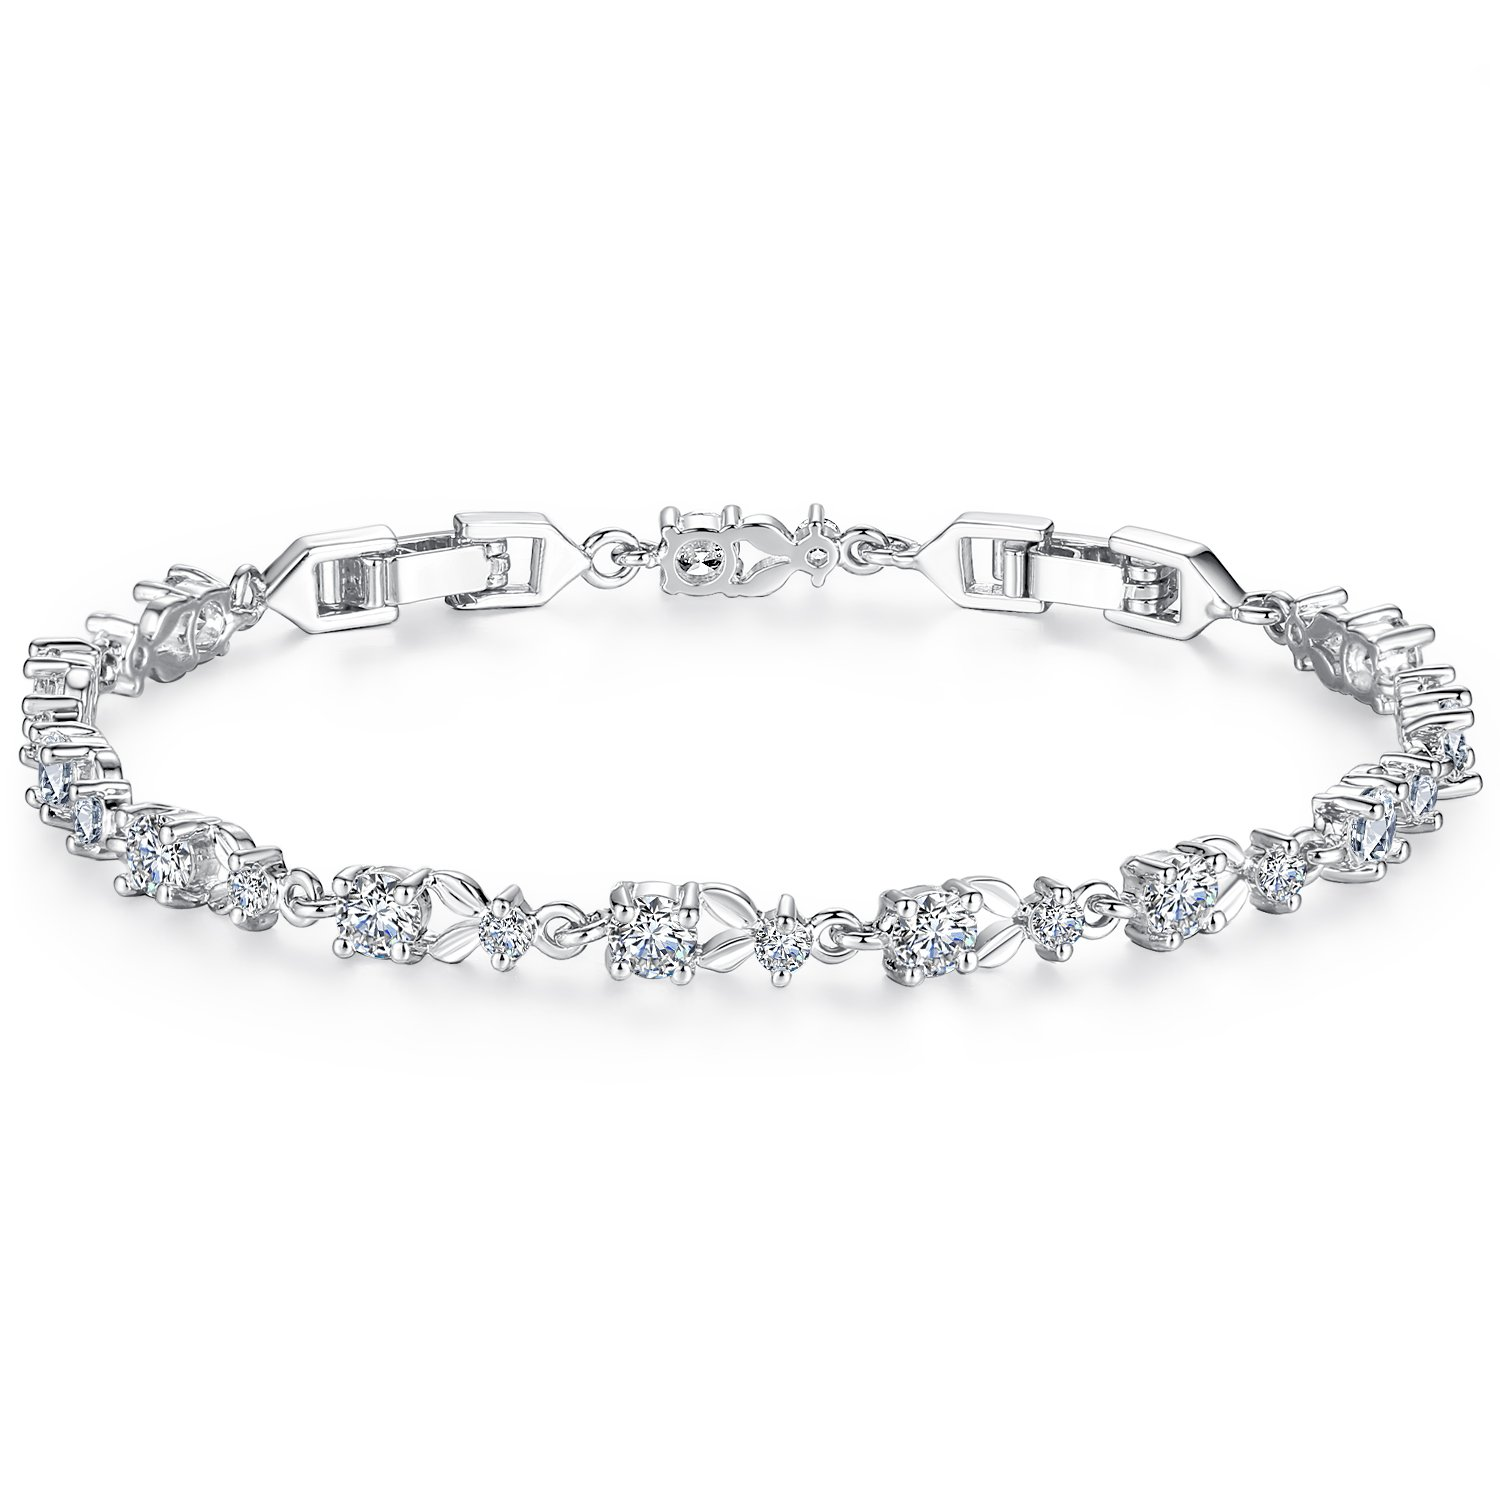 WOSTU Women Tennis Bracelets Luxury White Gold Plated Bracelet with Sparkling Cubic Zirconia Xmas Gifts for Her by WOSTU